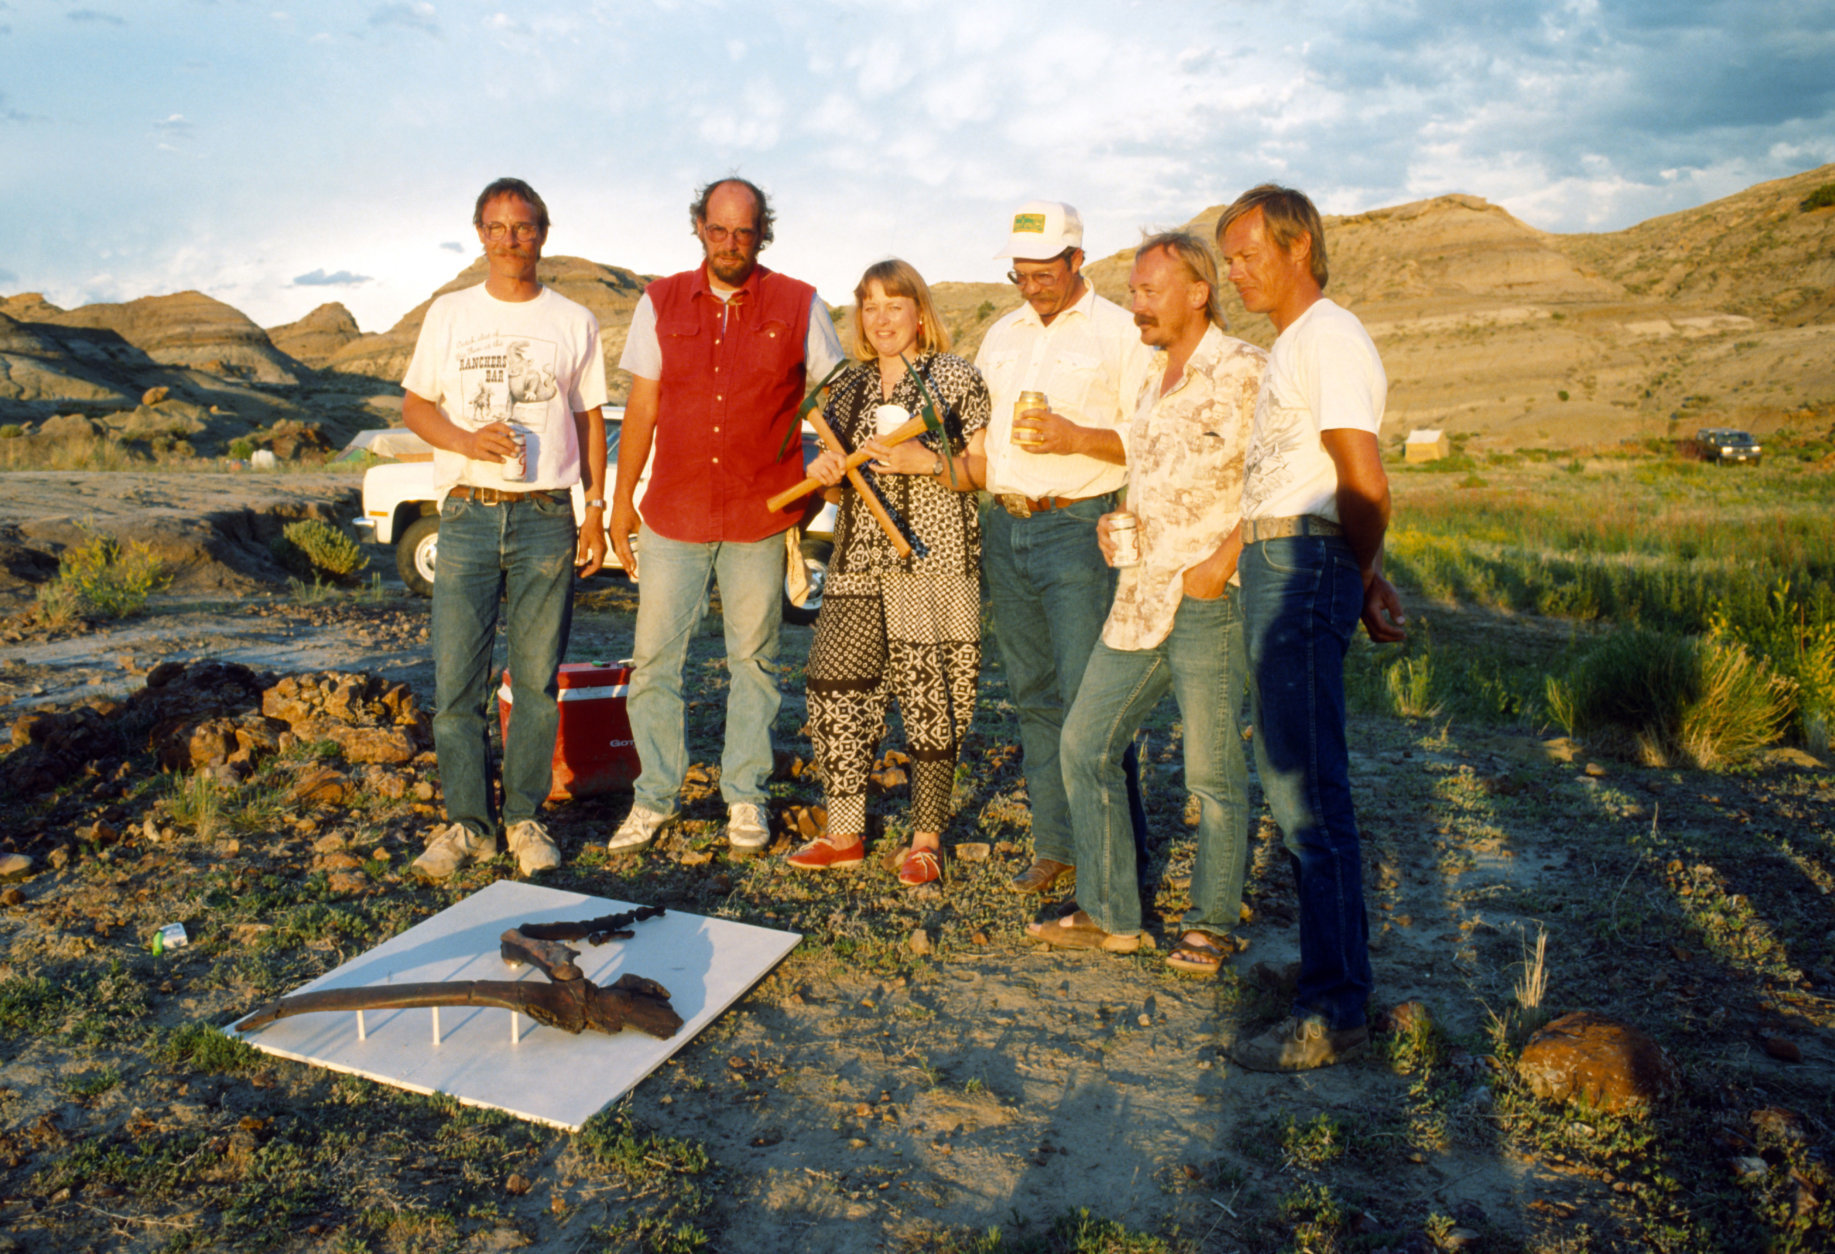 Discovered by Kathy Wankel in 1988 near Fort Peck Reservoir in eastern Montana, 80 to 85 percent of the Wankel T. rex remains were recovered. That makes it one of the most complete T. rex specimens ever unearthed. (Courtesy Museum of the Rockies)